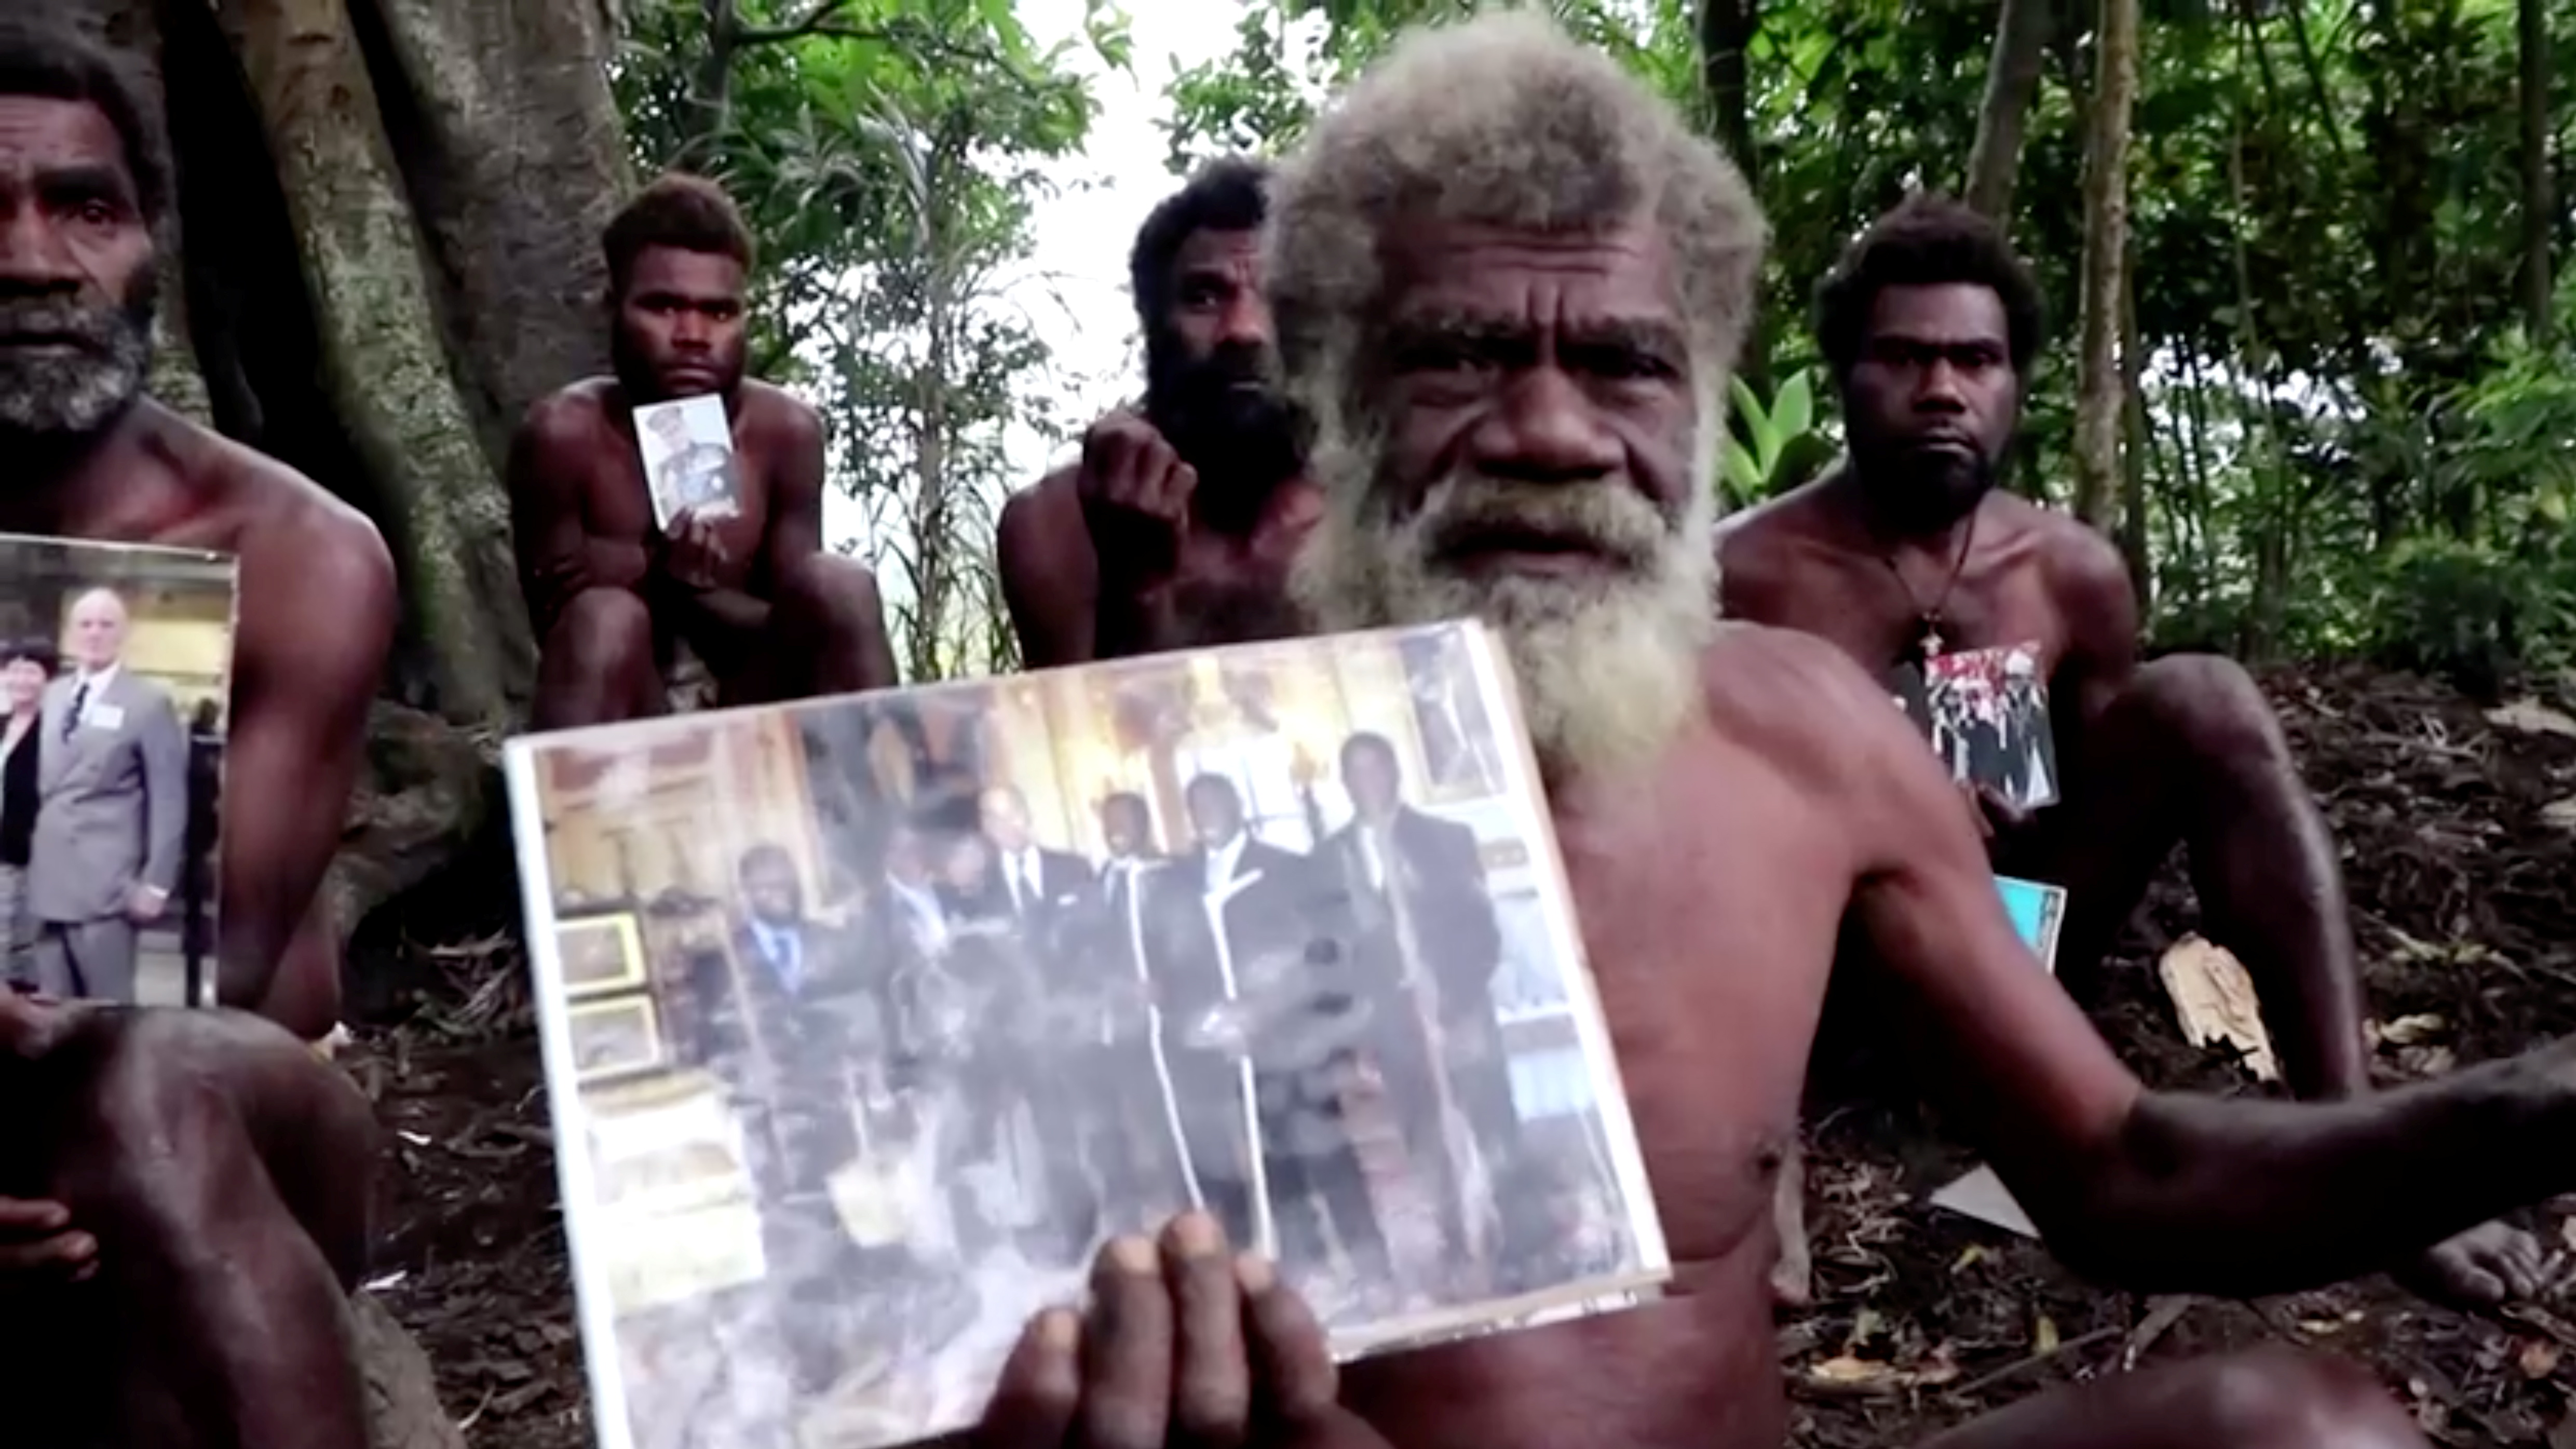 Ikunala village Chief Yapa holds photos of himself and four other local men with Britain's Prince Philip, taken during their 2007 trip to England, as he sends their condolences after the prince passed away at age 99 on Friday, in Ikunala, Tanna island, Vanuatu April 11, 2021. Reuters TV via REUTERS